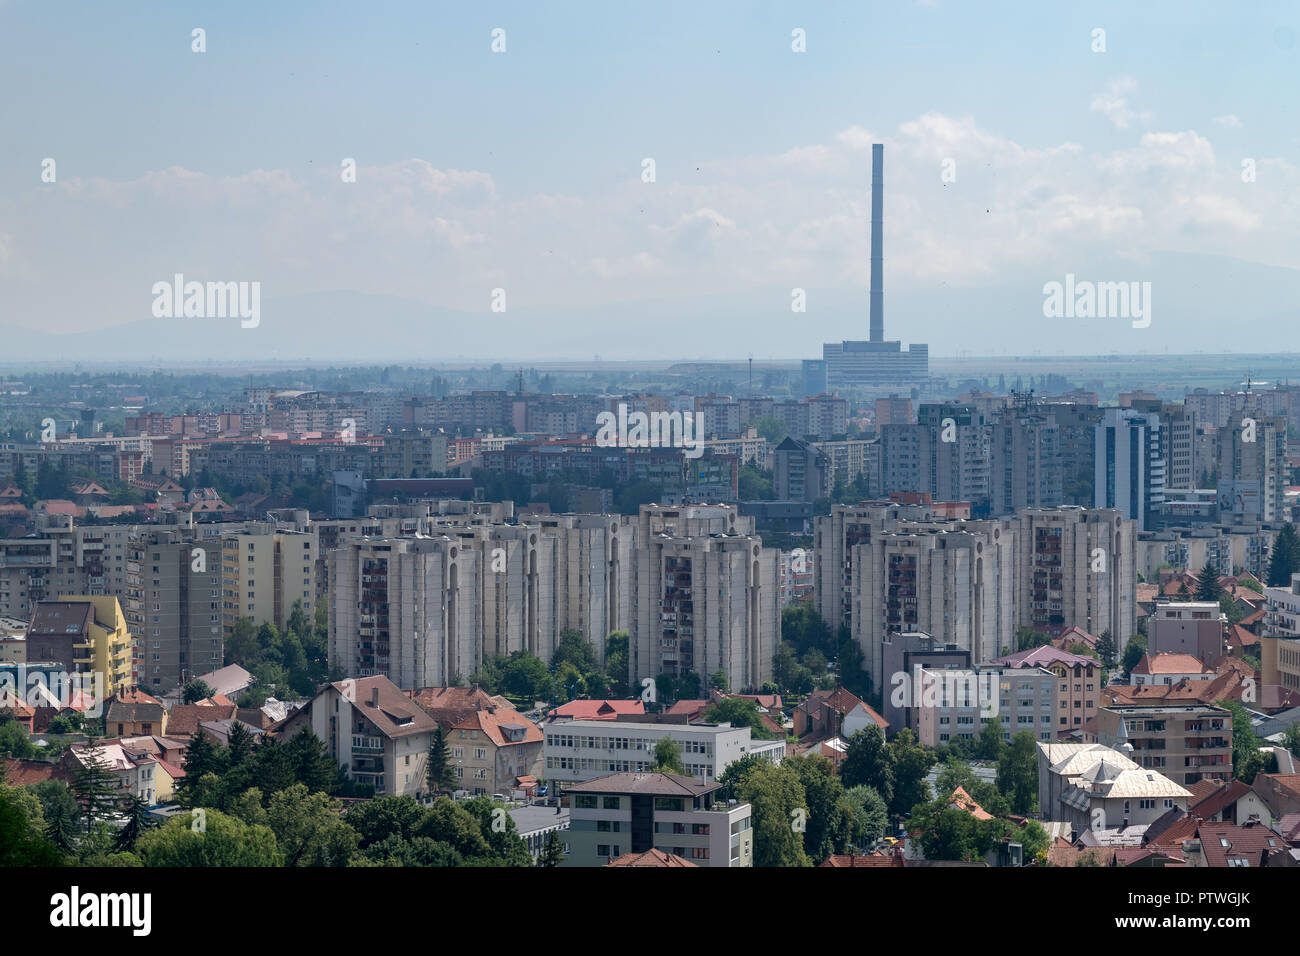 View to Brasov residential and industrial area from above in Brasov, Romania. - Stock Image